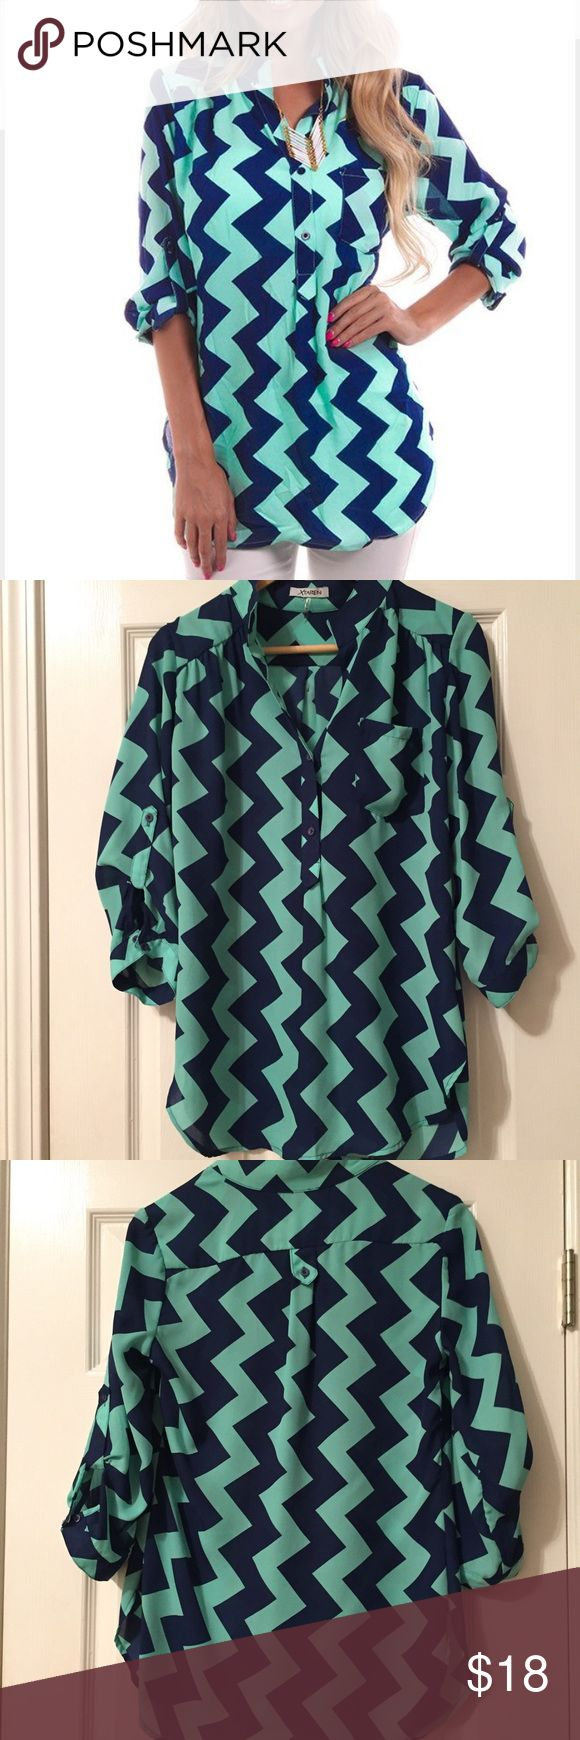 "Chevron Top Chevron Top purchased from boutique so not a ""name brand""- mint and navy- sleeves have tabs- sheer fabric- fee loose strings as sheer tops tend to get after being worn -other than that great condition Tops"